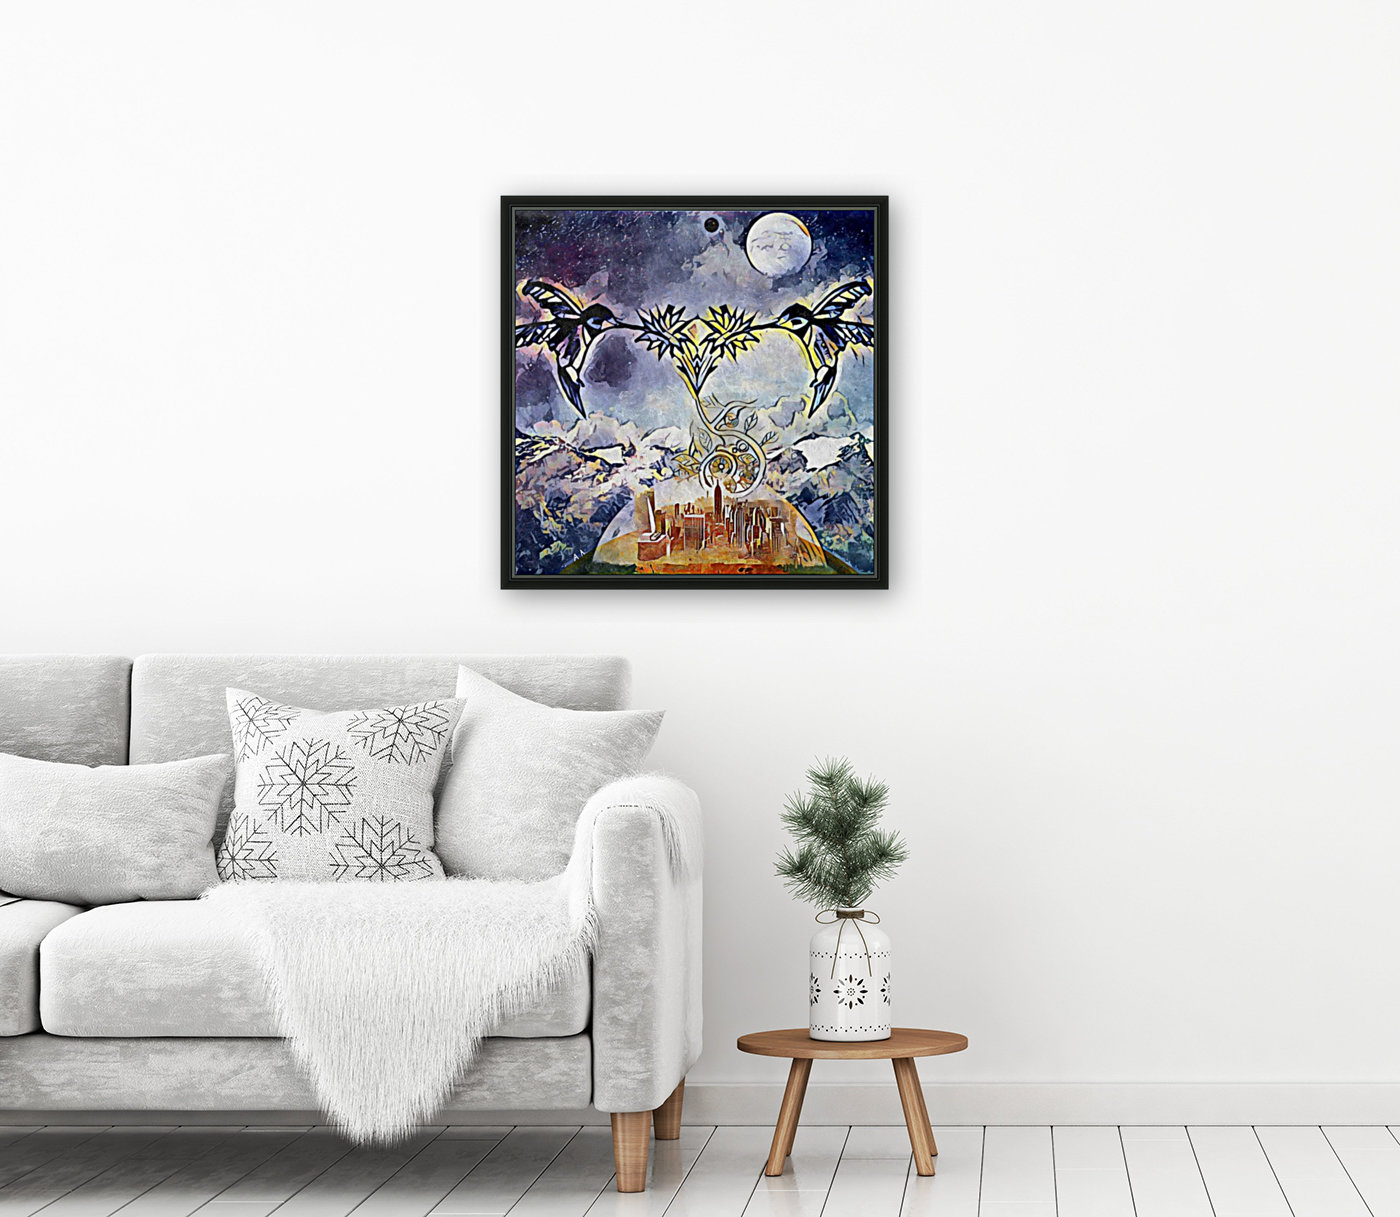 Two hummingbirds in the sky eating nectar nearby a domed city  Art